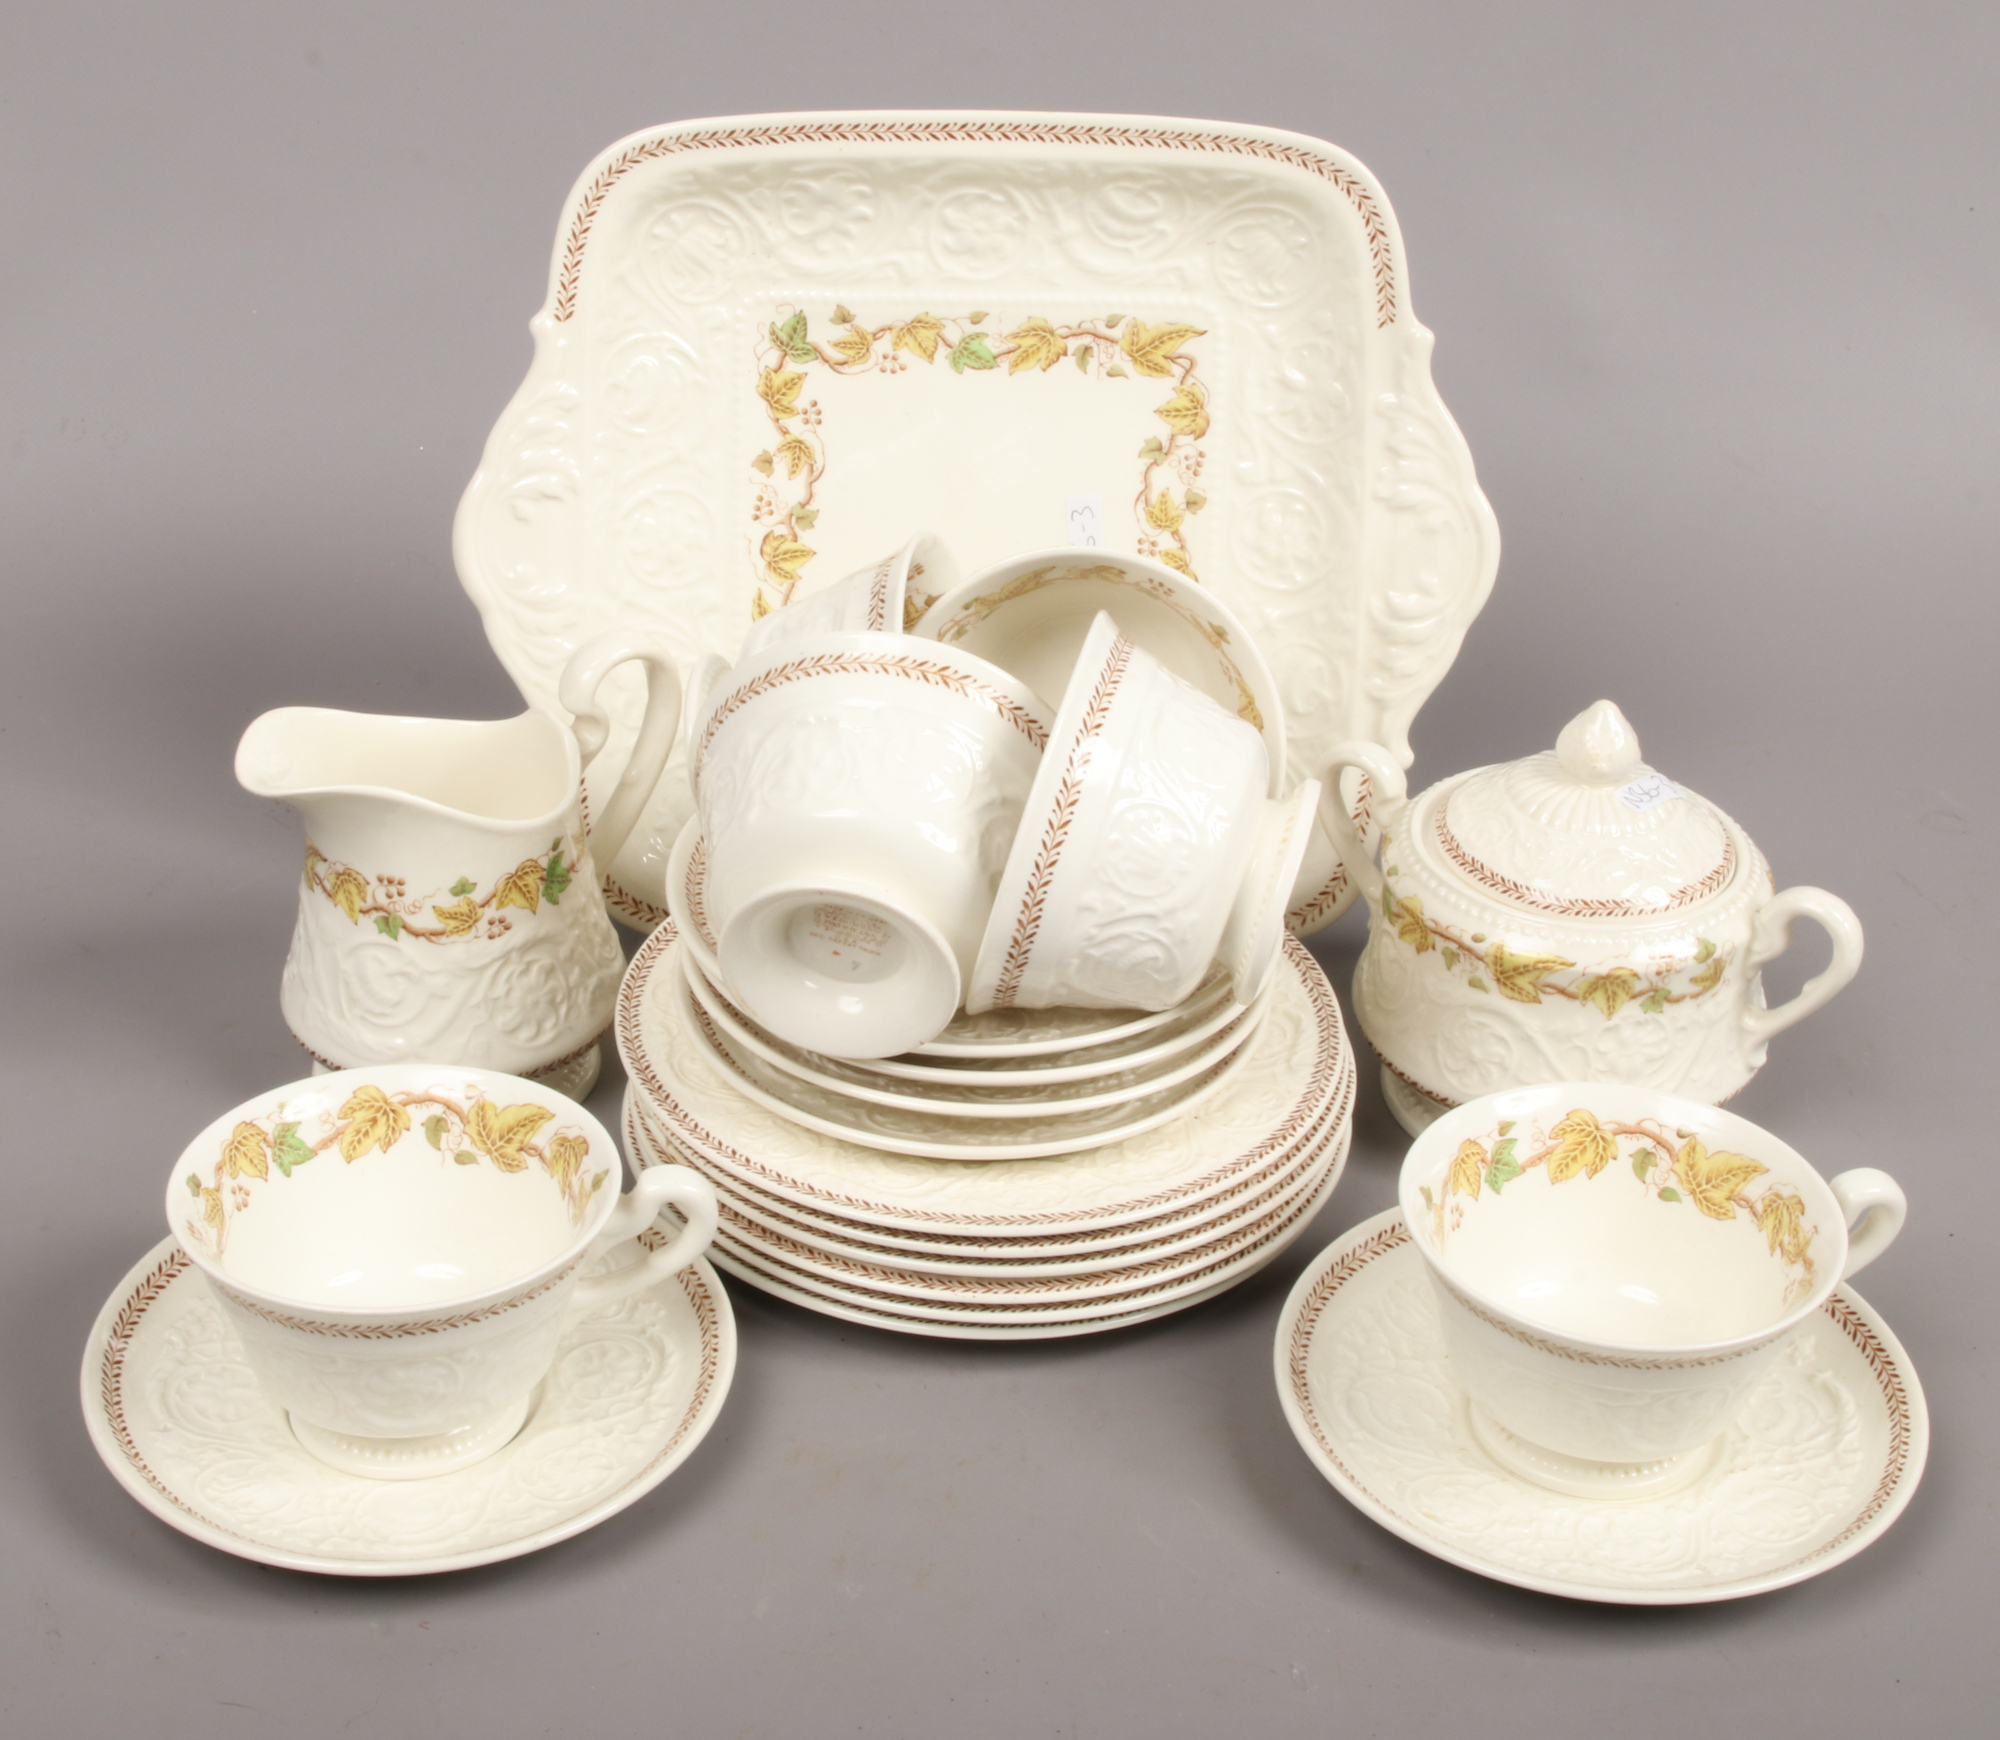 Lot 14 - A Wedgwood Patrician six place teaset decorated in the Golden Ivy pattern.